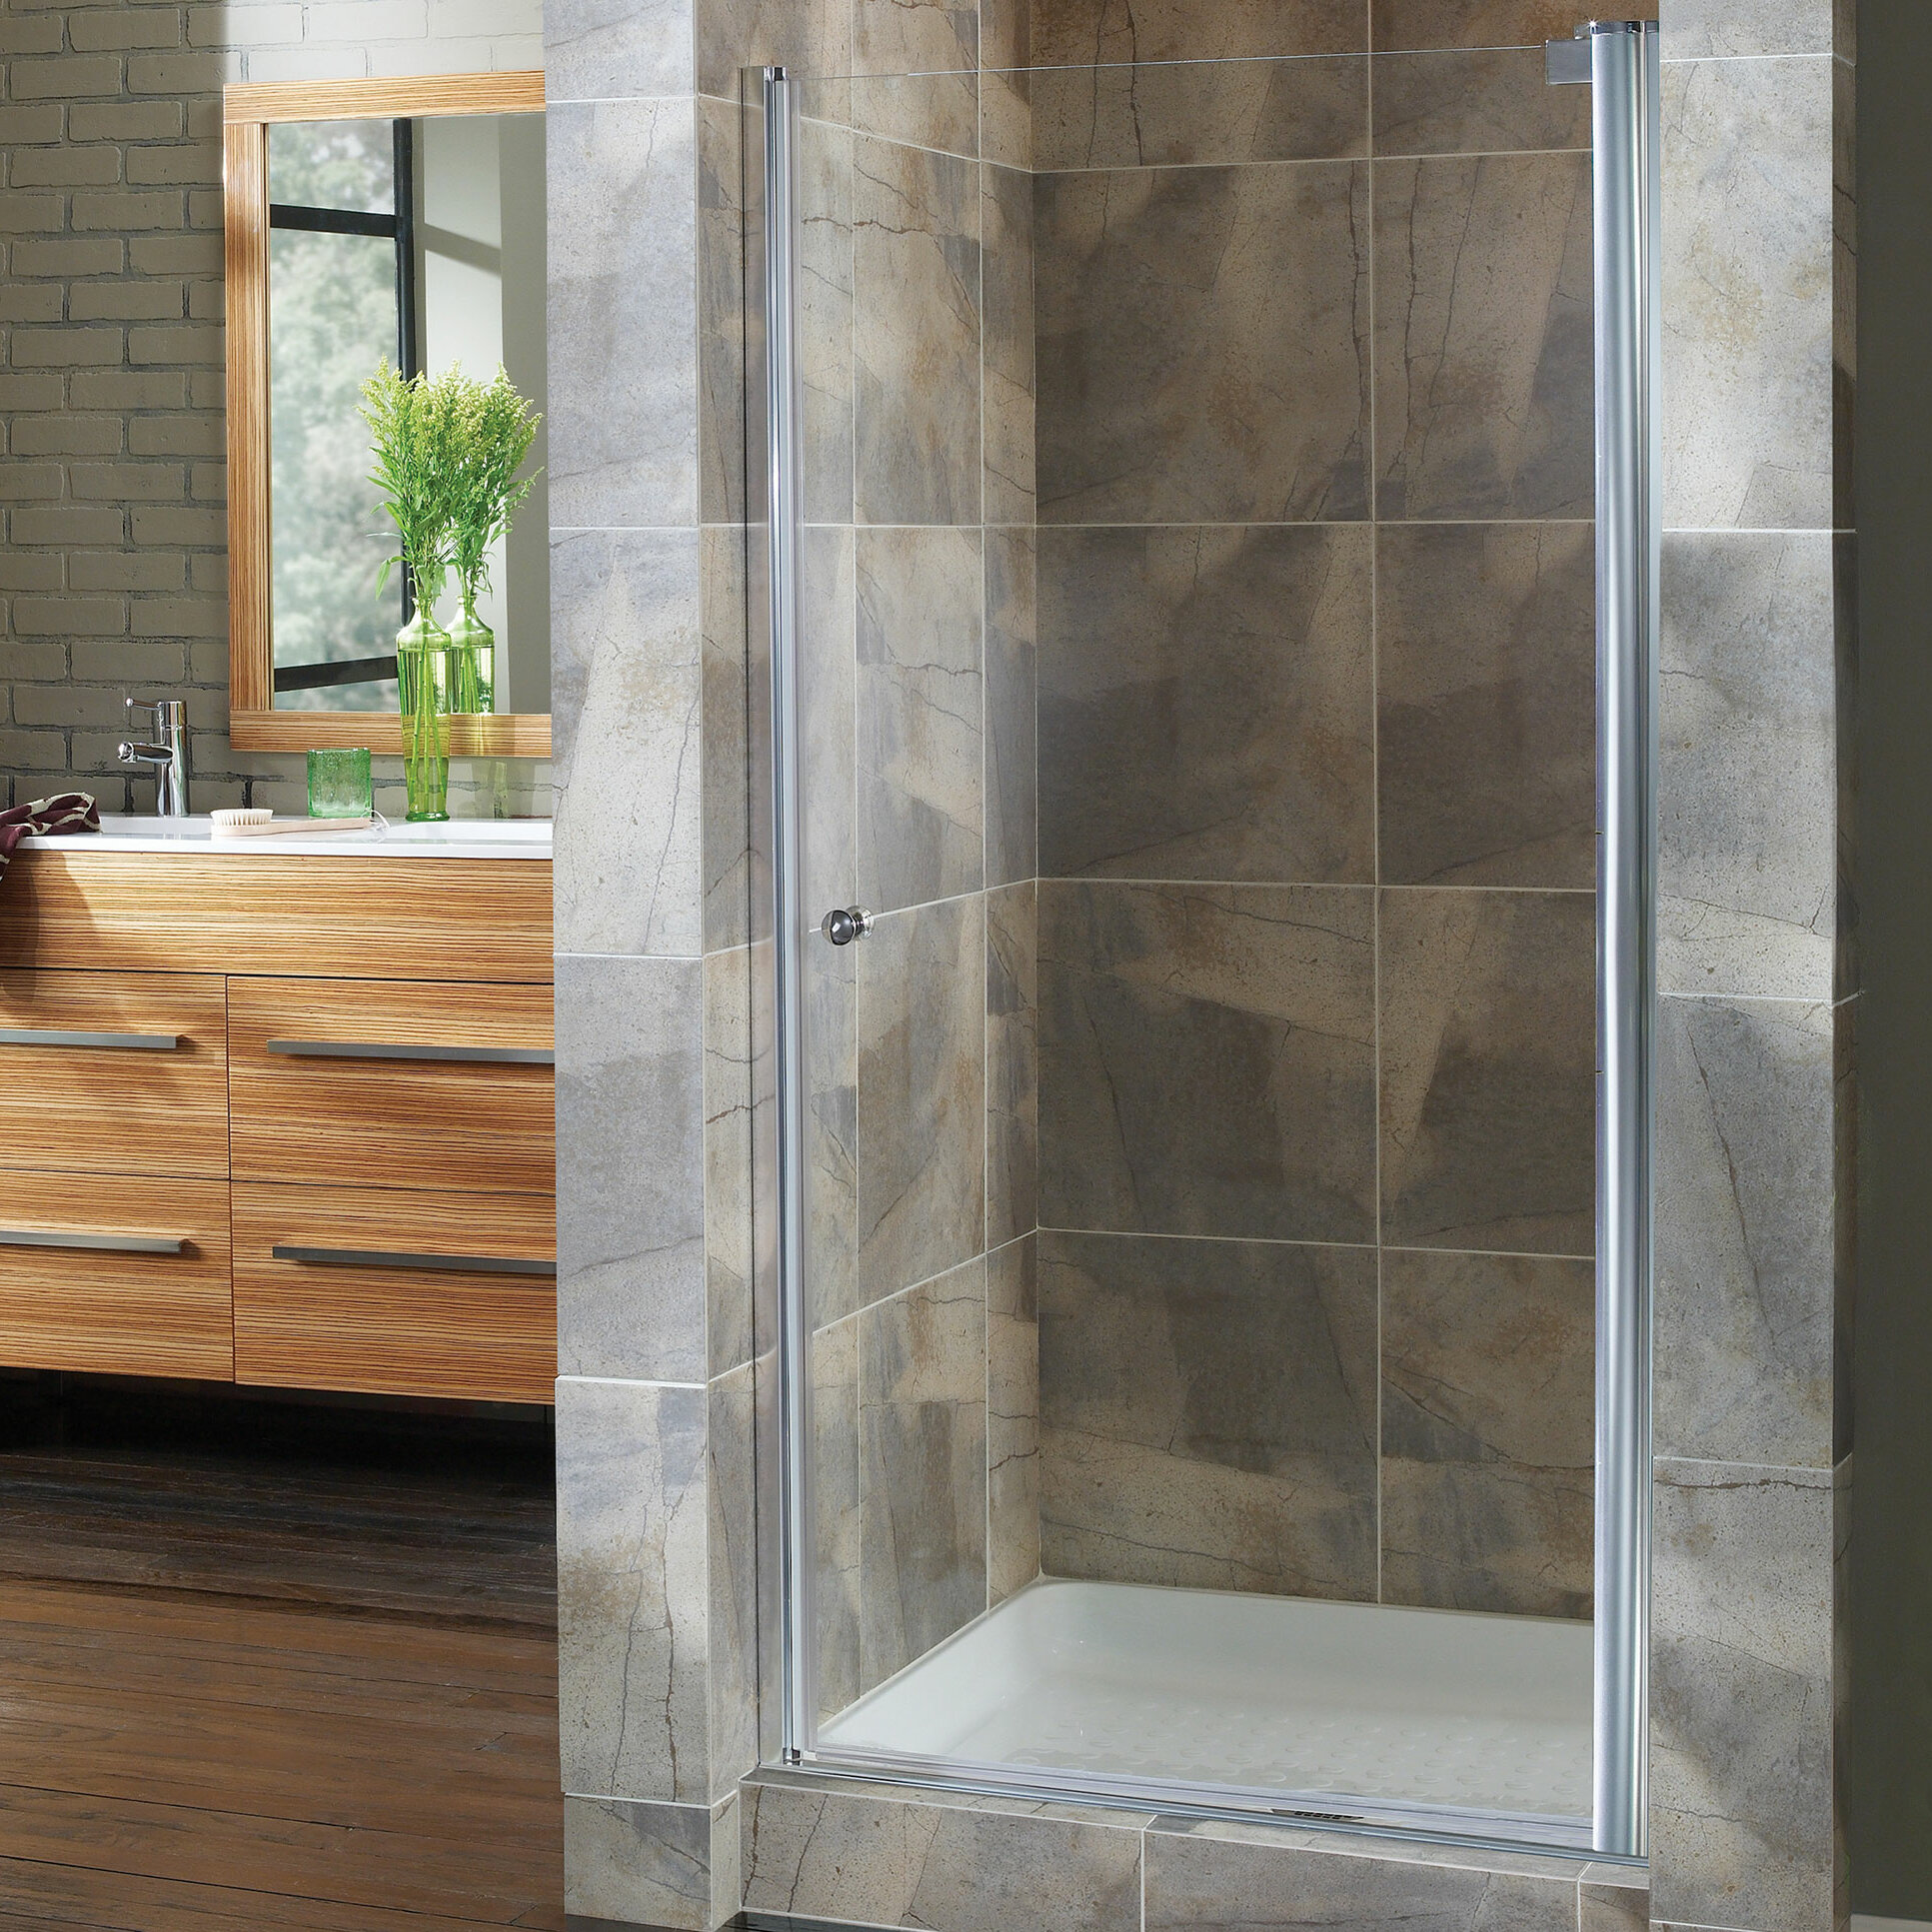 Details About Hazelwood Home Brock 24 5 X 65 Pivot Frameless Shower Door Brushed Nickel